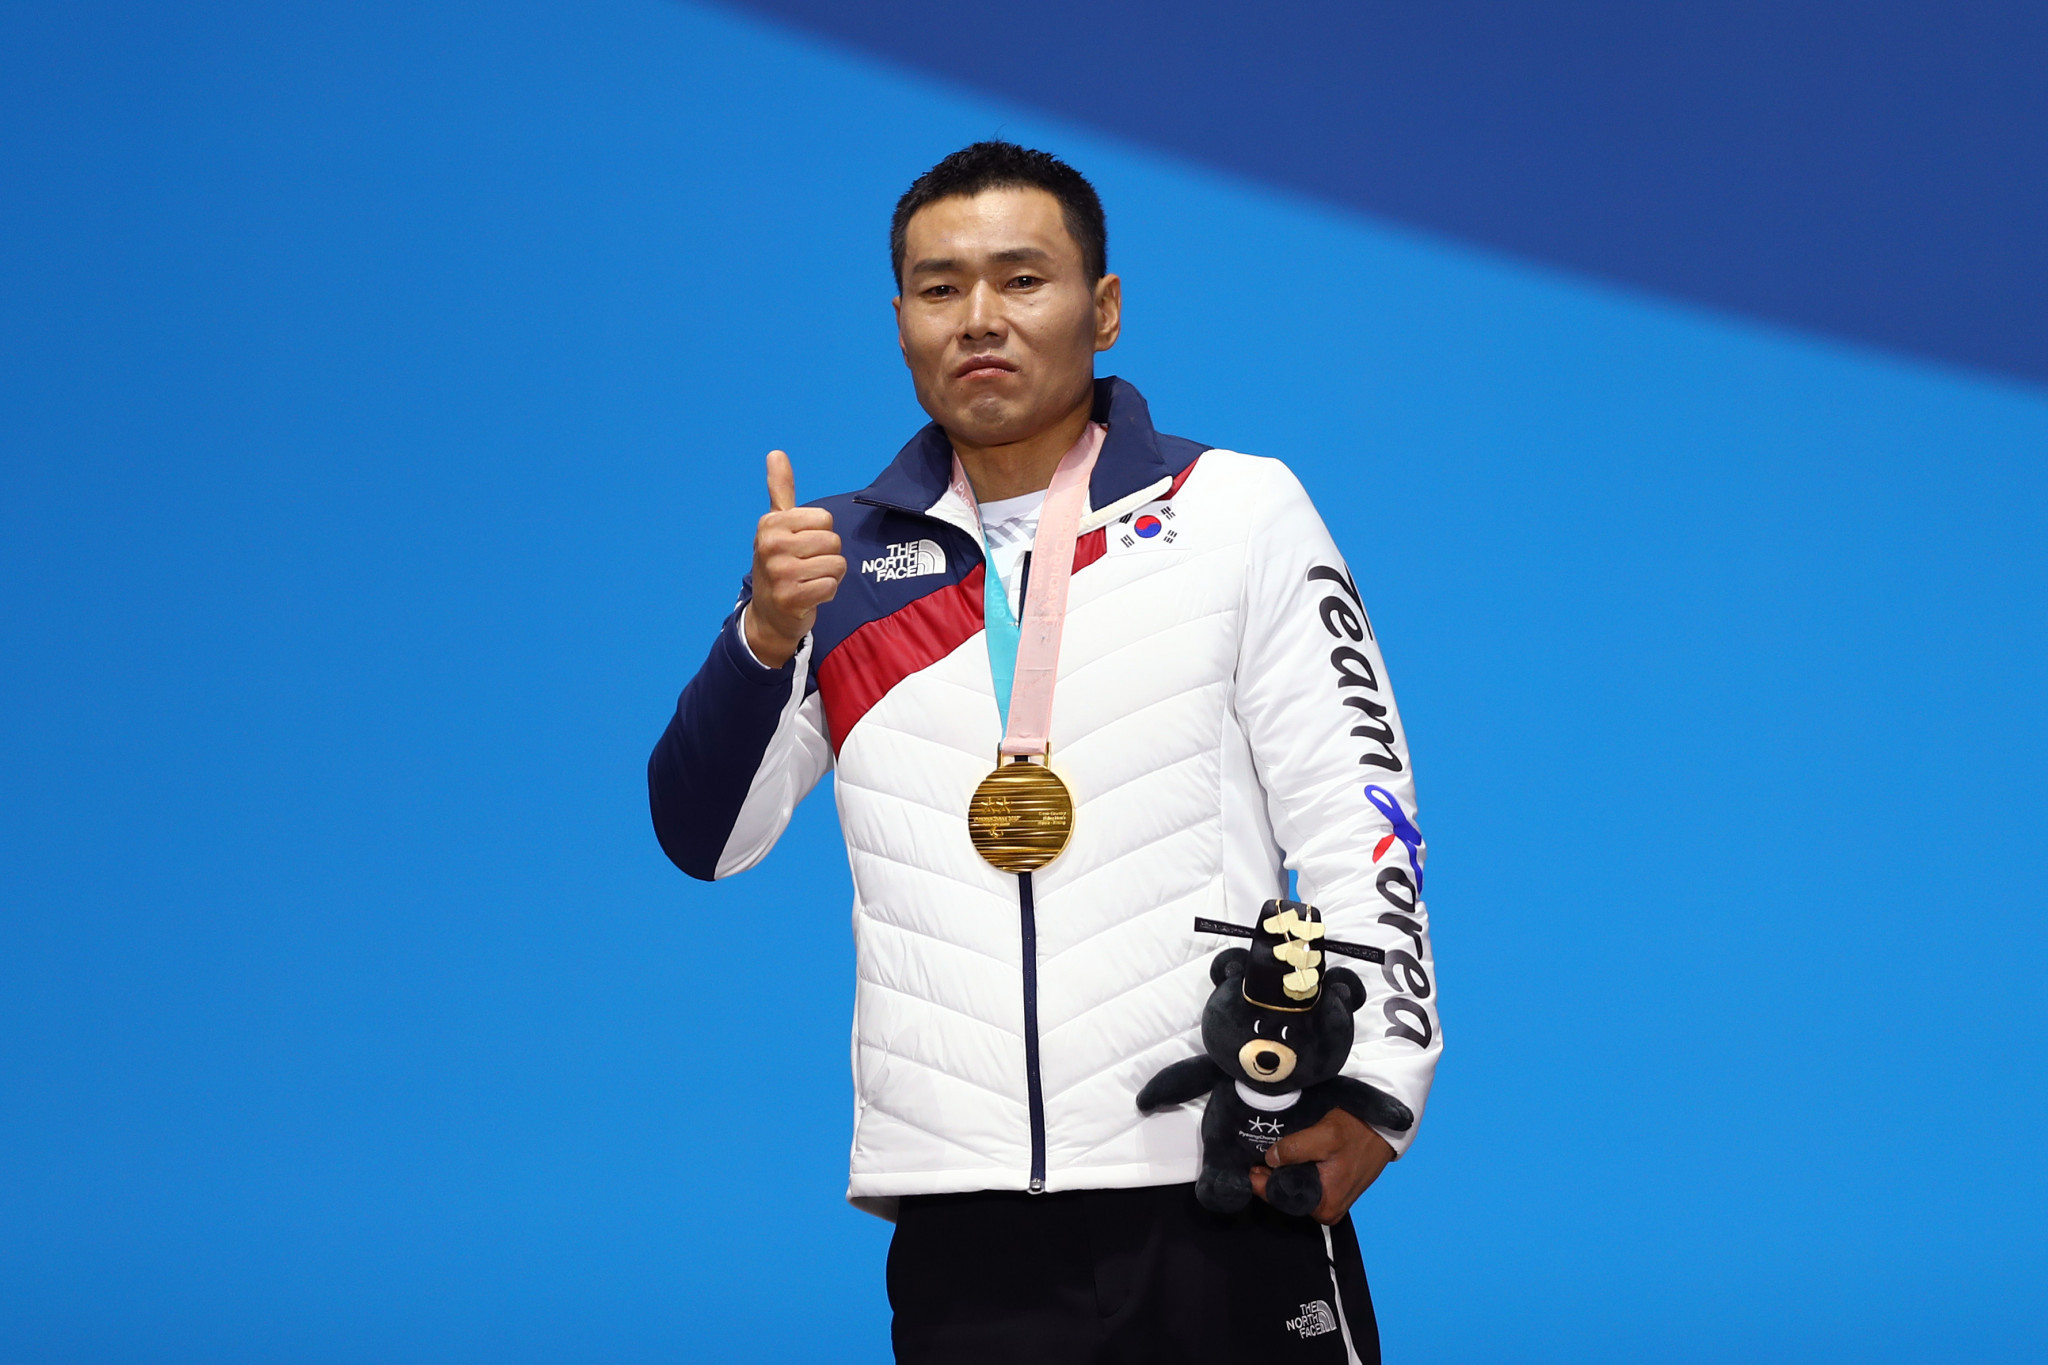 It is hoped that Sin Eui Hyun's gold medal in cross-country skiing will inspire young disabled people in South Korea to take up Para-sport ©Getty Images